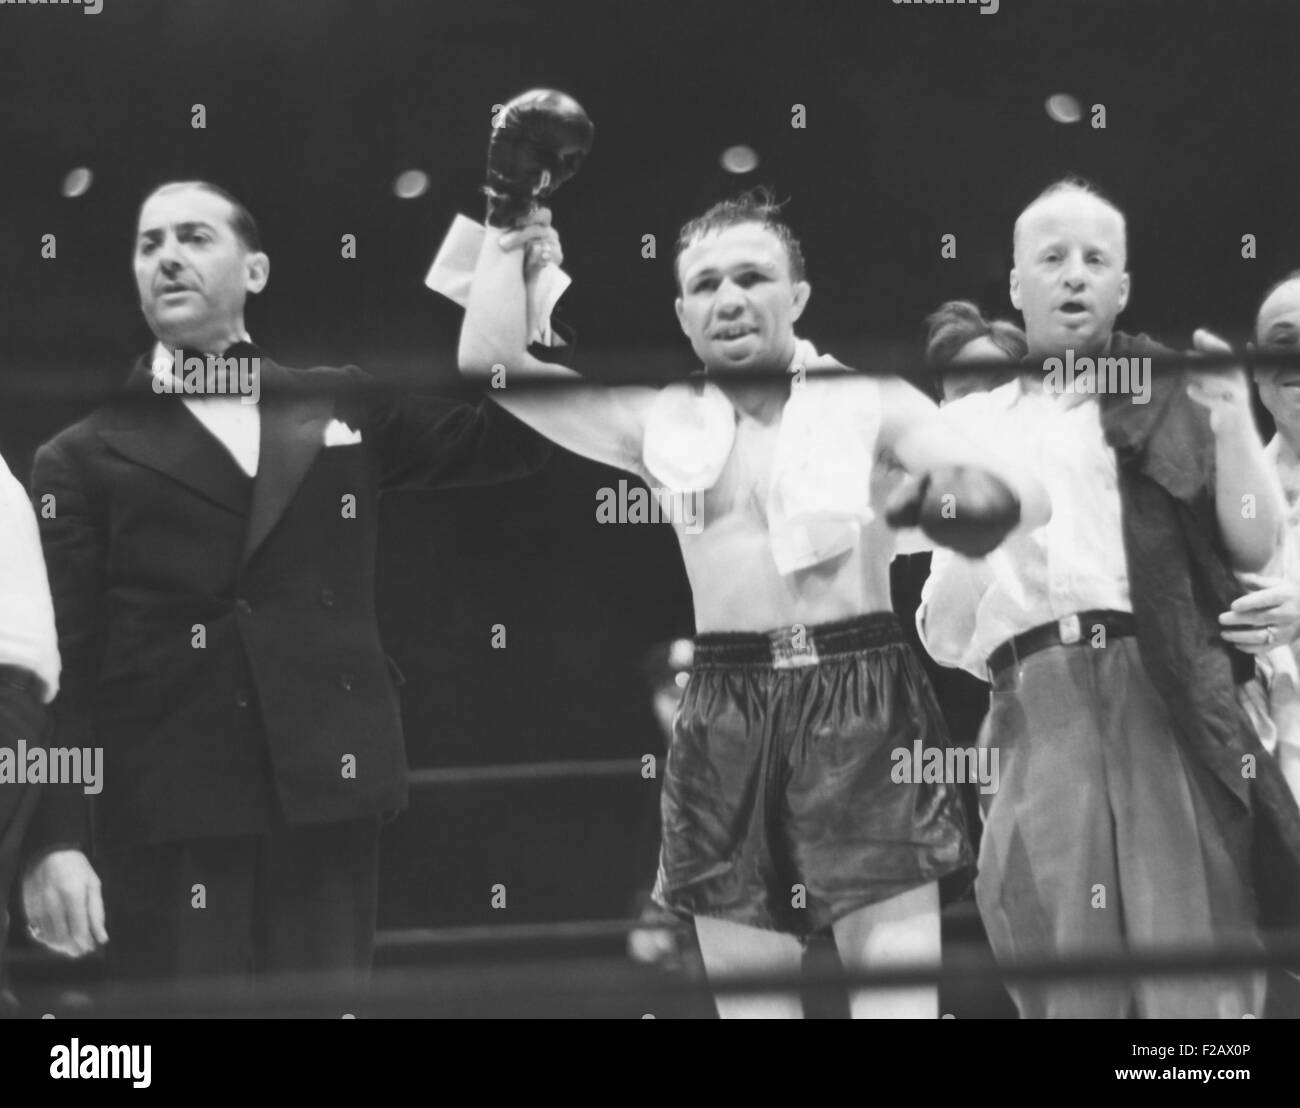 Lou Ambers, World Lightweight Champion, in triumph with Announcer Harry Balough, Aug. 22, 1939. Henry Armstrong - Stock Image